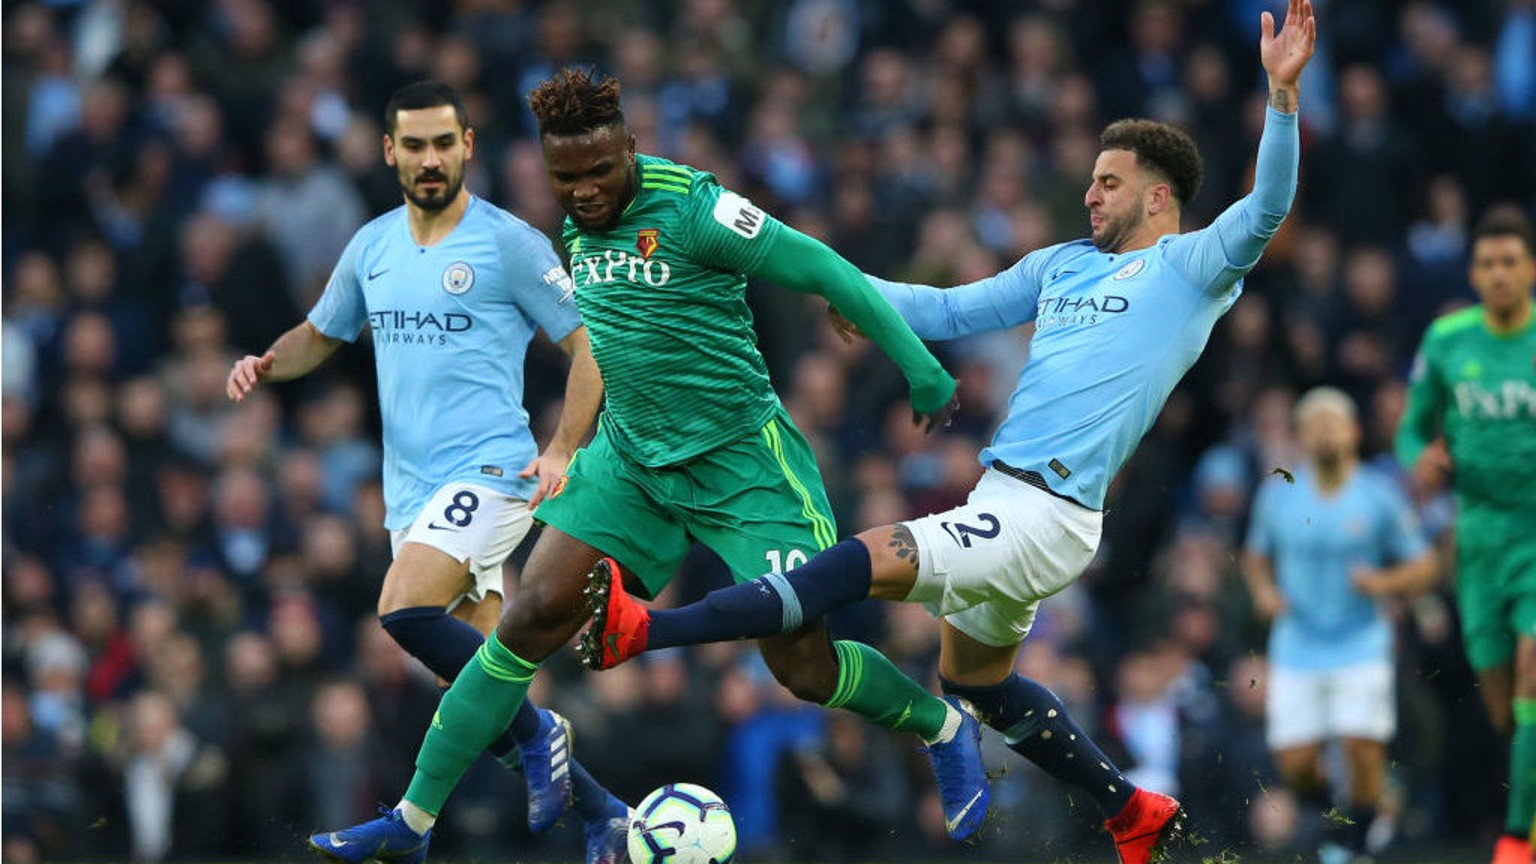 NO ENTRY: Kyle Walker puts a block on Isaac Success